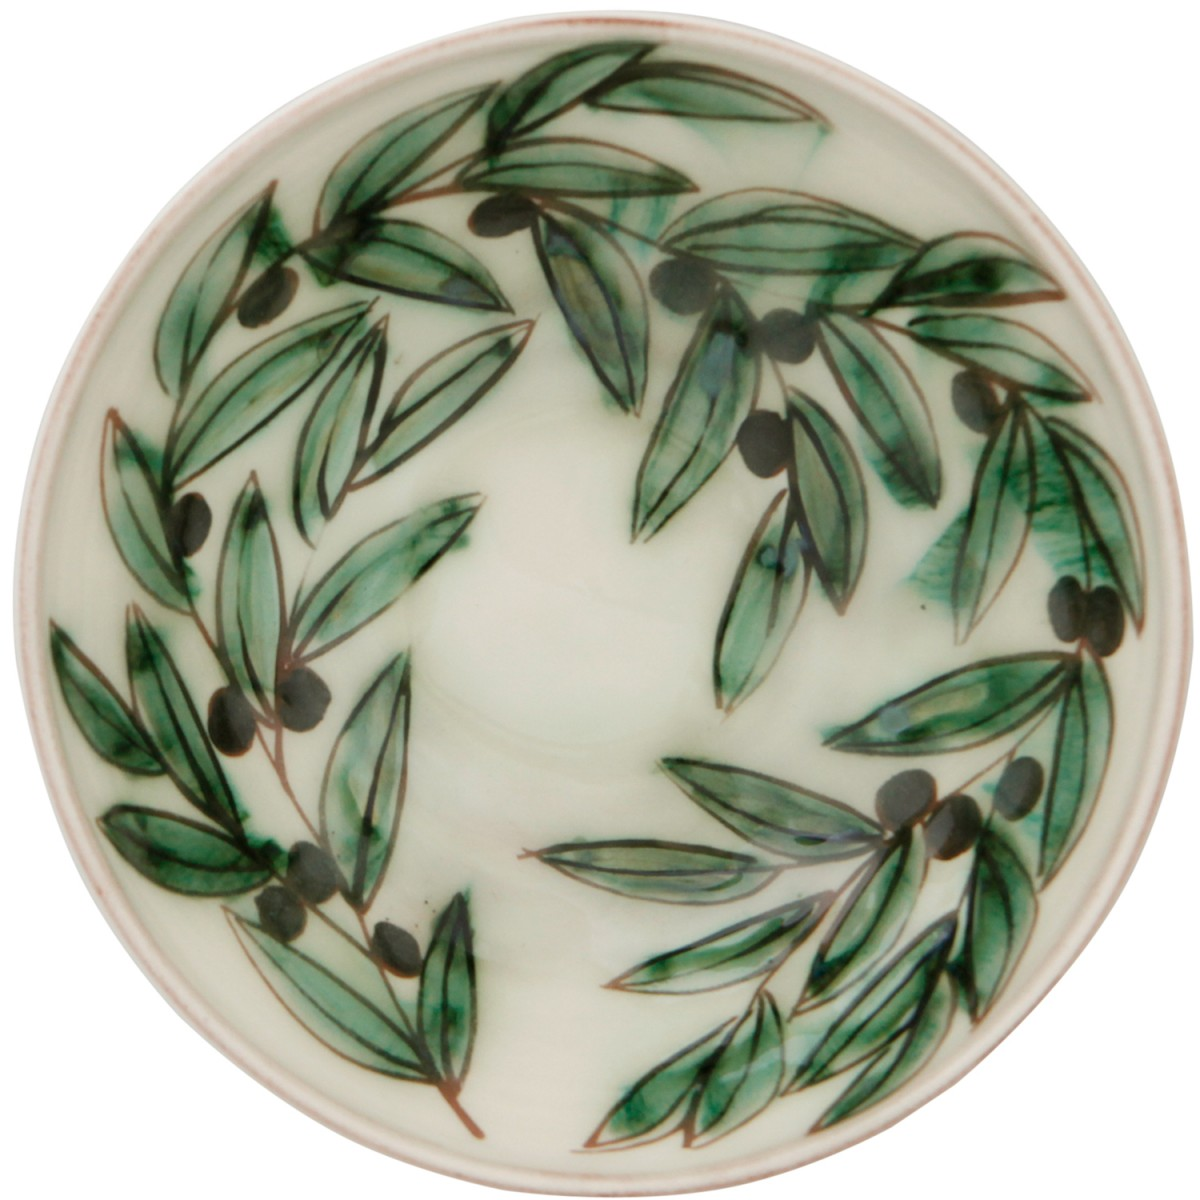 Ceramic Serving Bowls-Olive wreath II-1